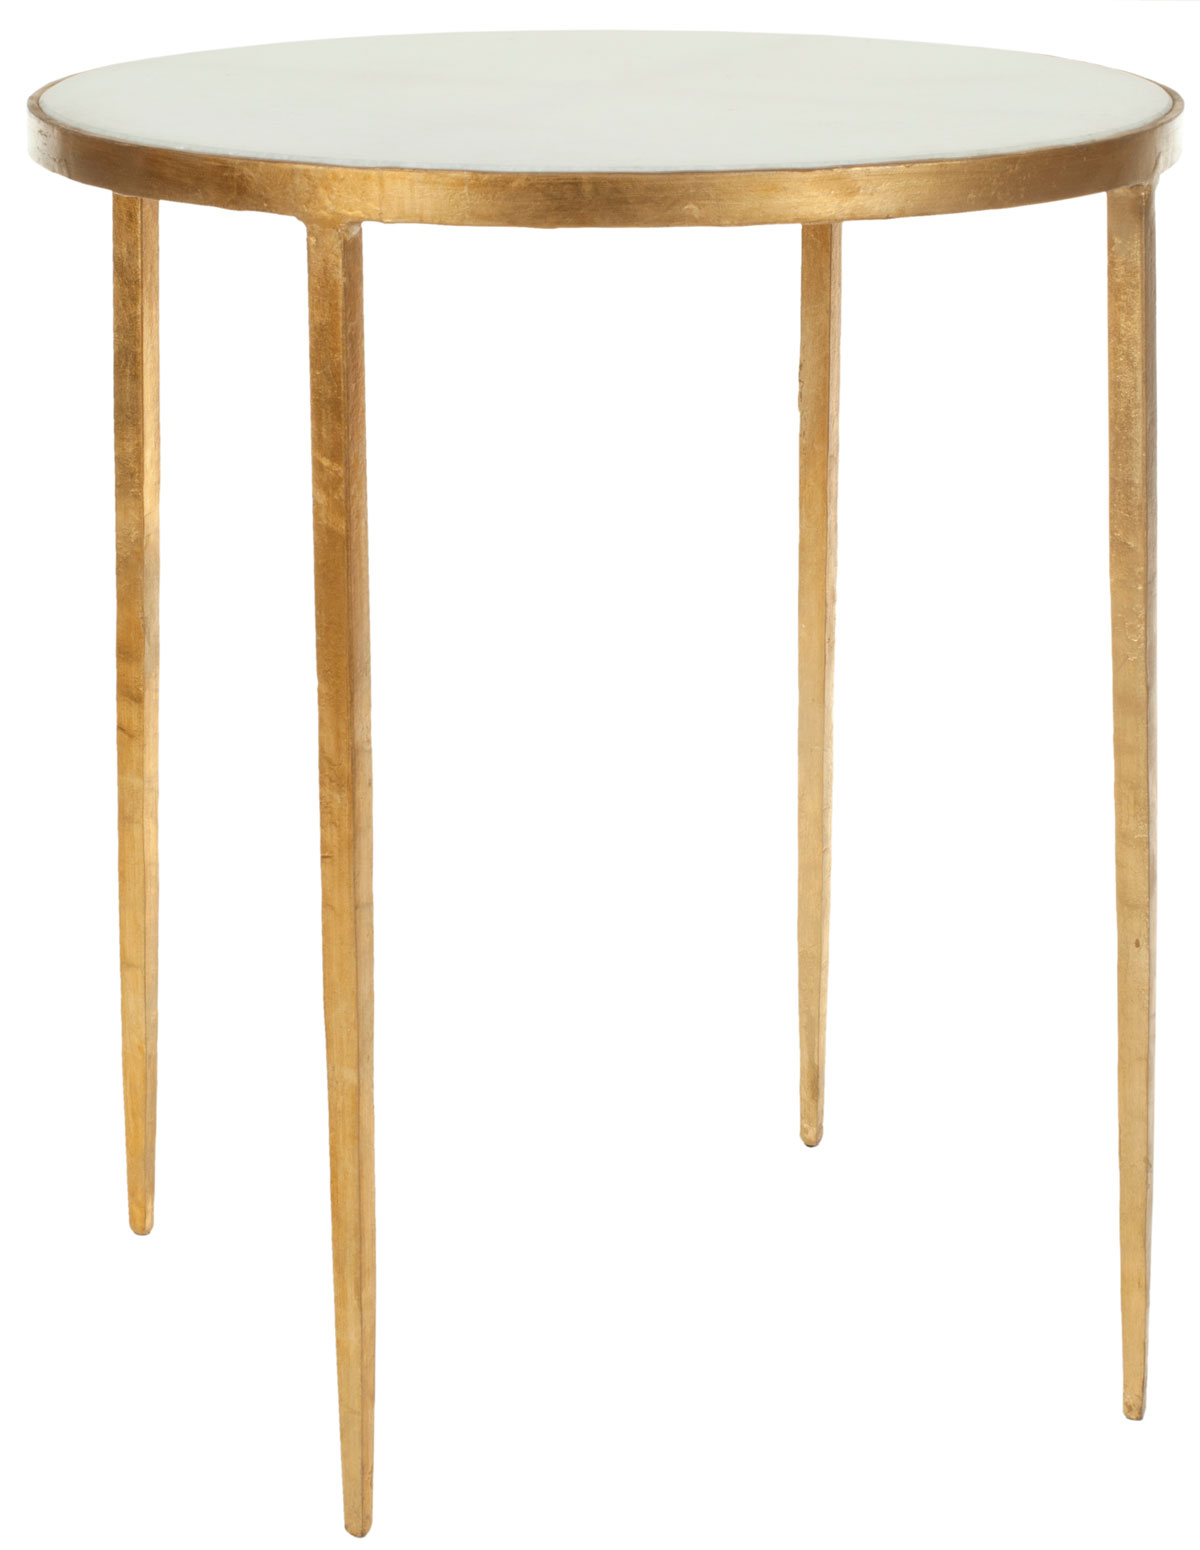 accent tables furniture safavieh front gold table share this product side design for drawing room solid wood sofa pier one end metal chairside glass ikea nautical chandelier light